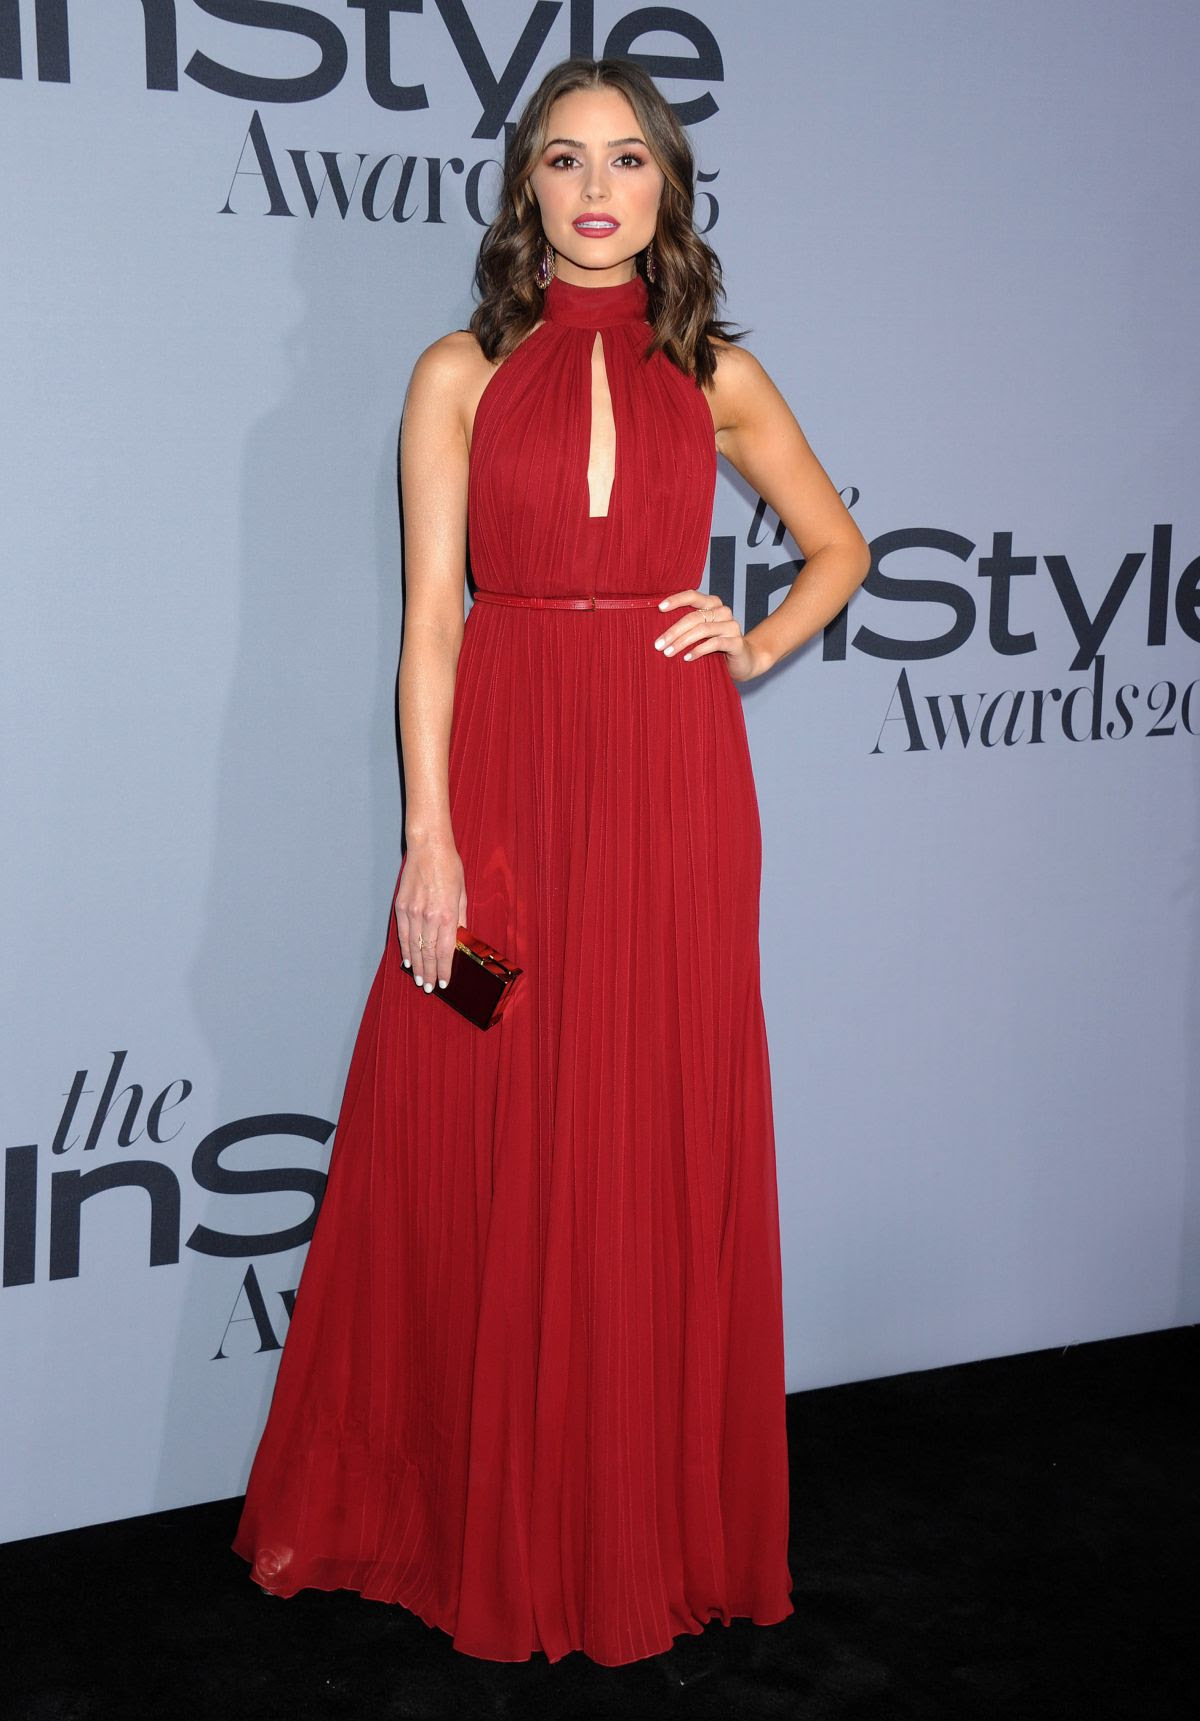 OLIVIA CULPO at InStyle Awards 2015 in Los Angeles 10/26/2015